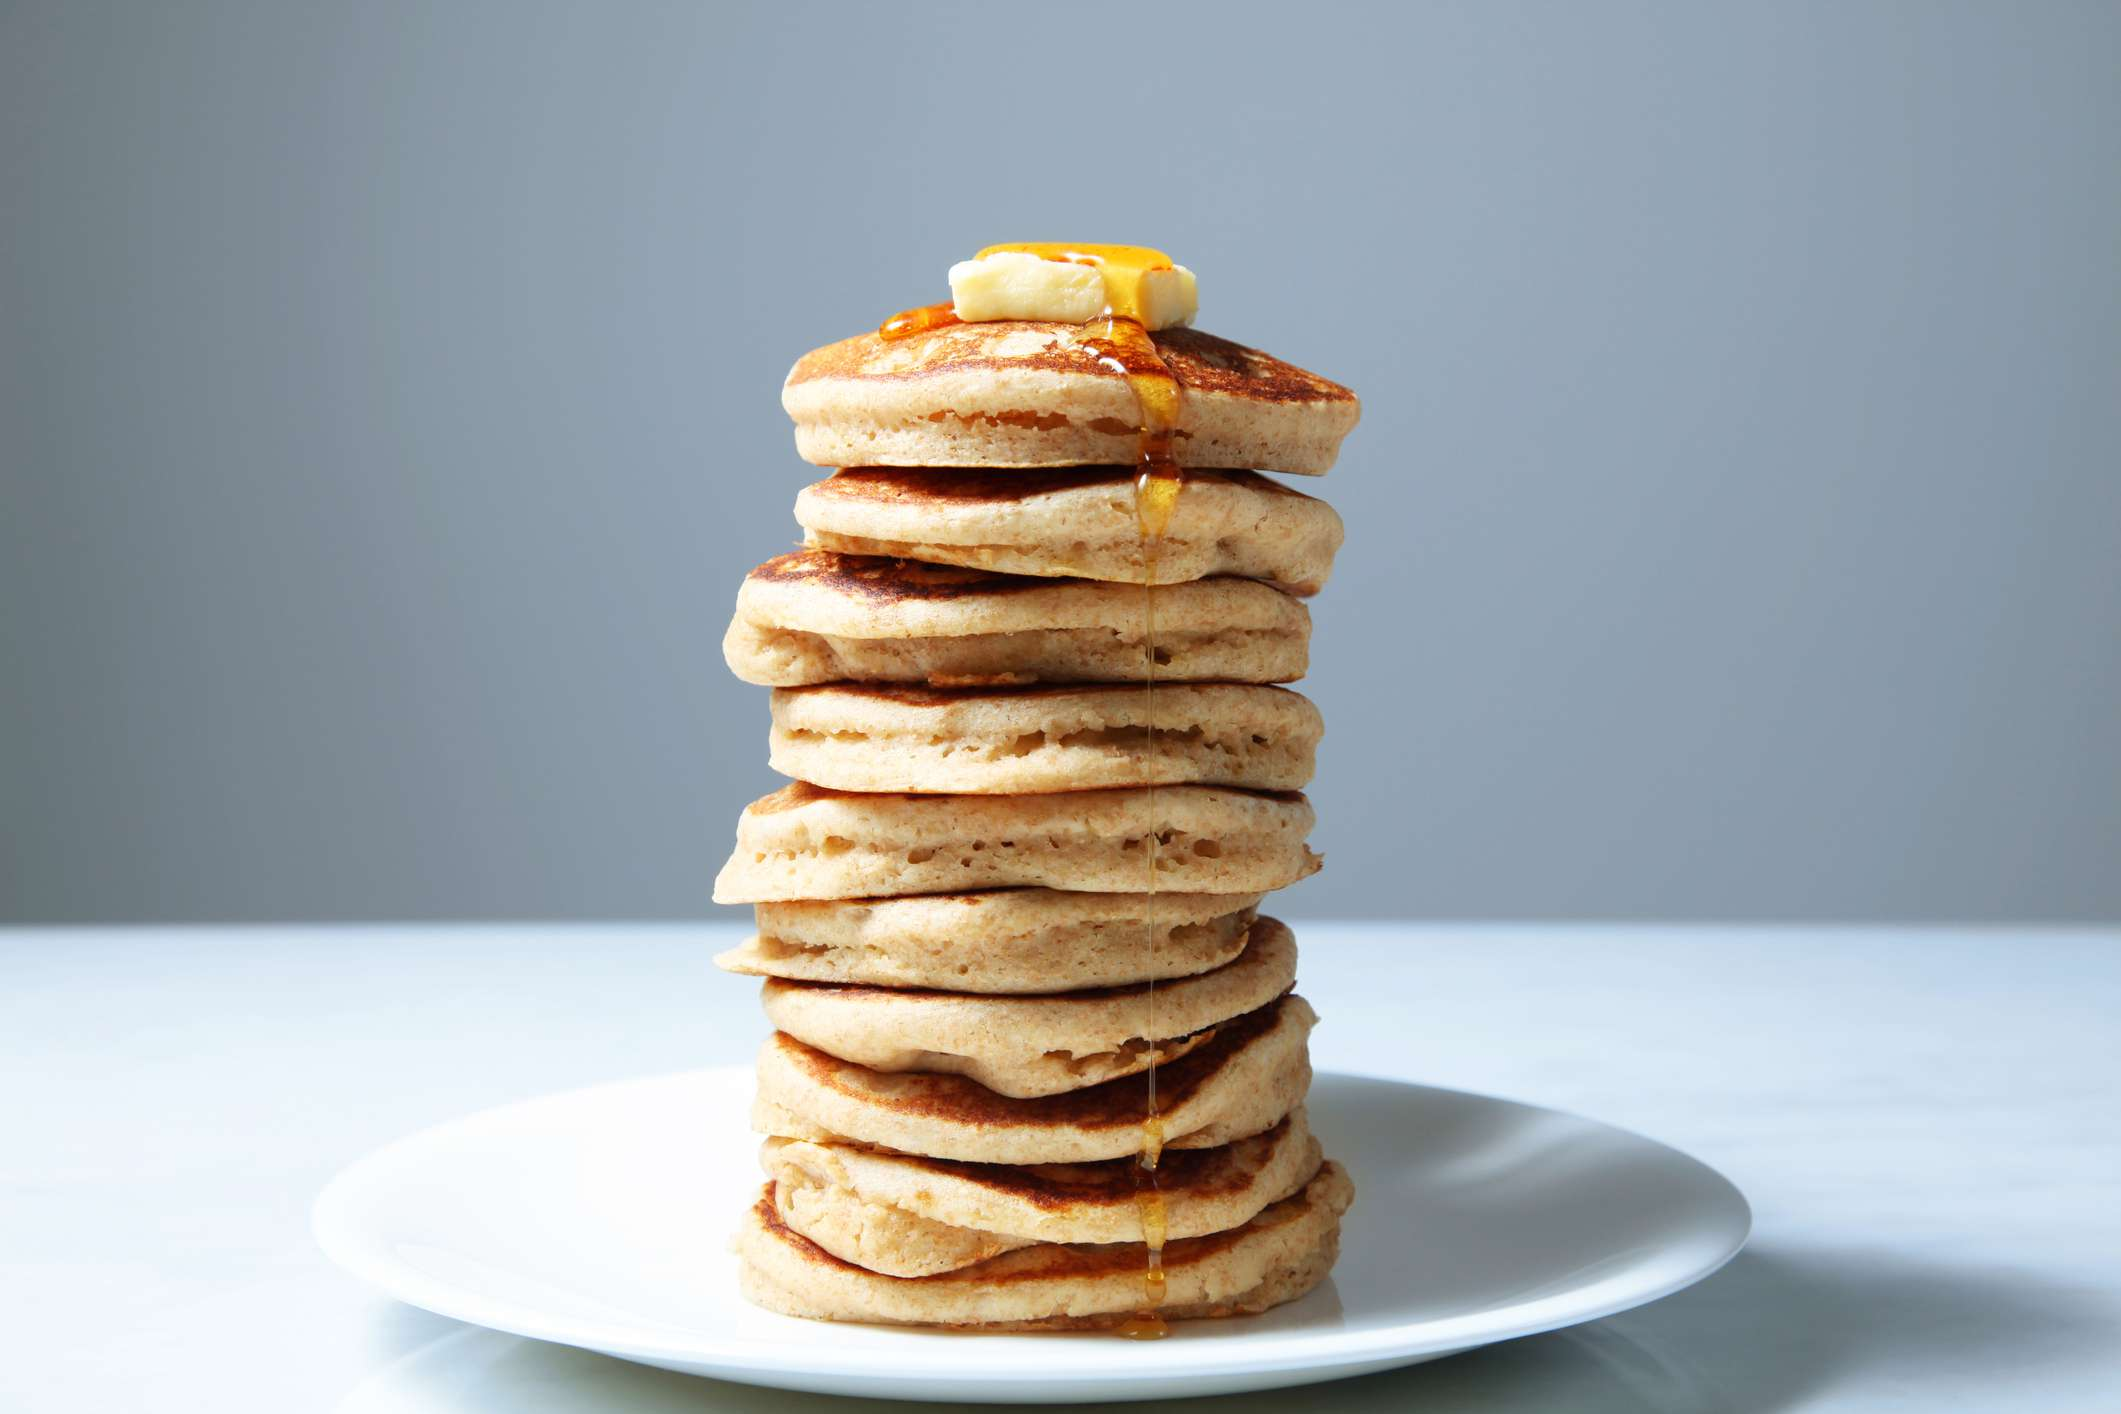 A large stack of fluffy, wheat pancakes, topped with a pad of yellow butter and golden maple syrup